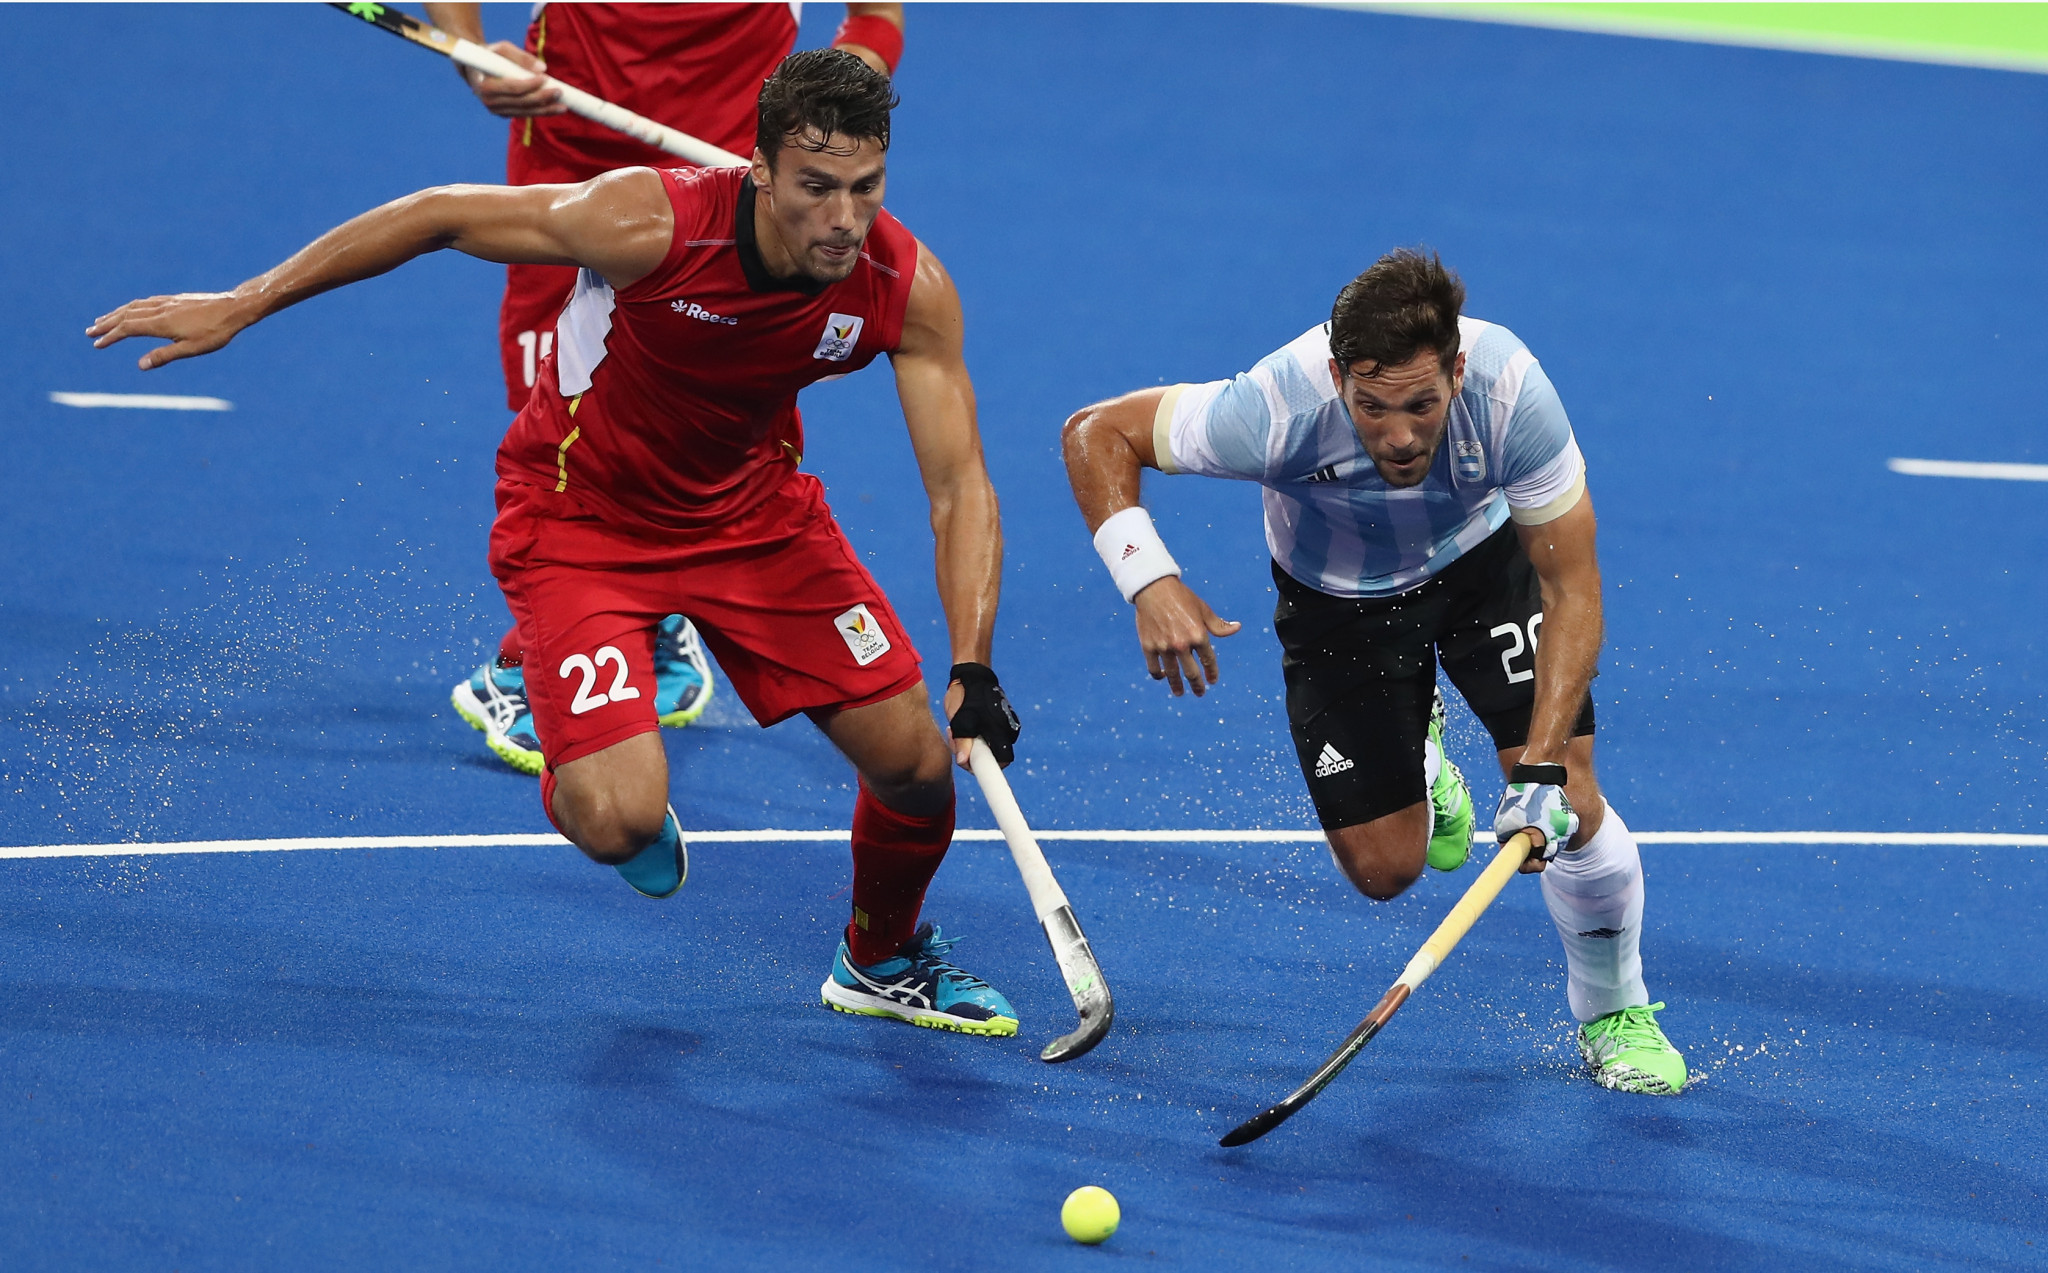 Repeat of Rio 2016 final in store at 2017 Men's Hockey World League Final in Bhubaneswar